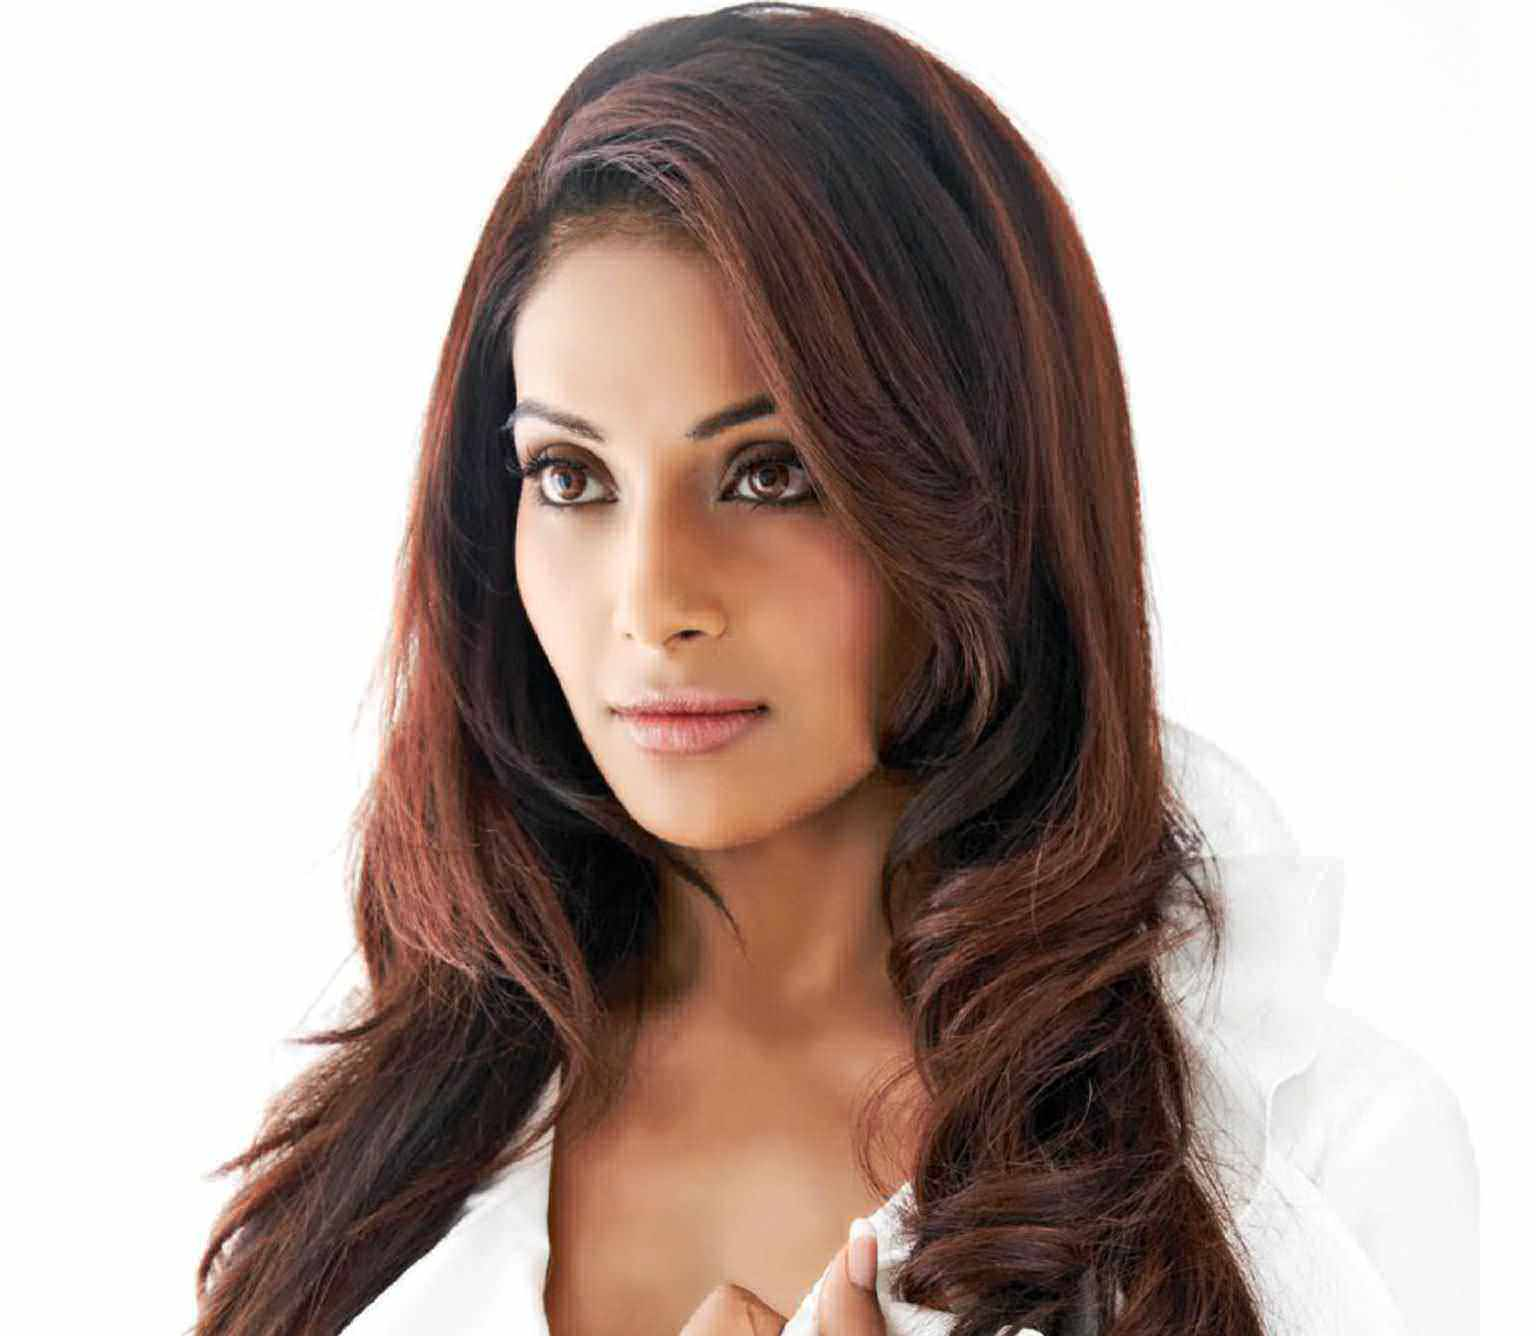 The Queen Of Horror: Bipasha Basu